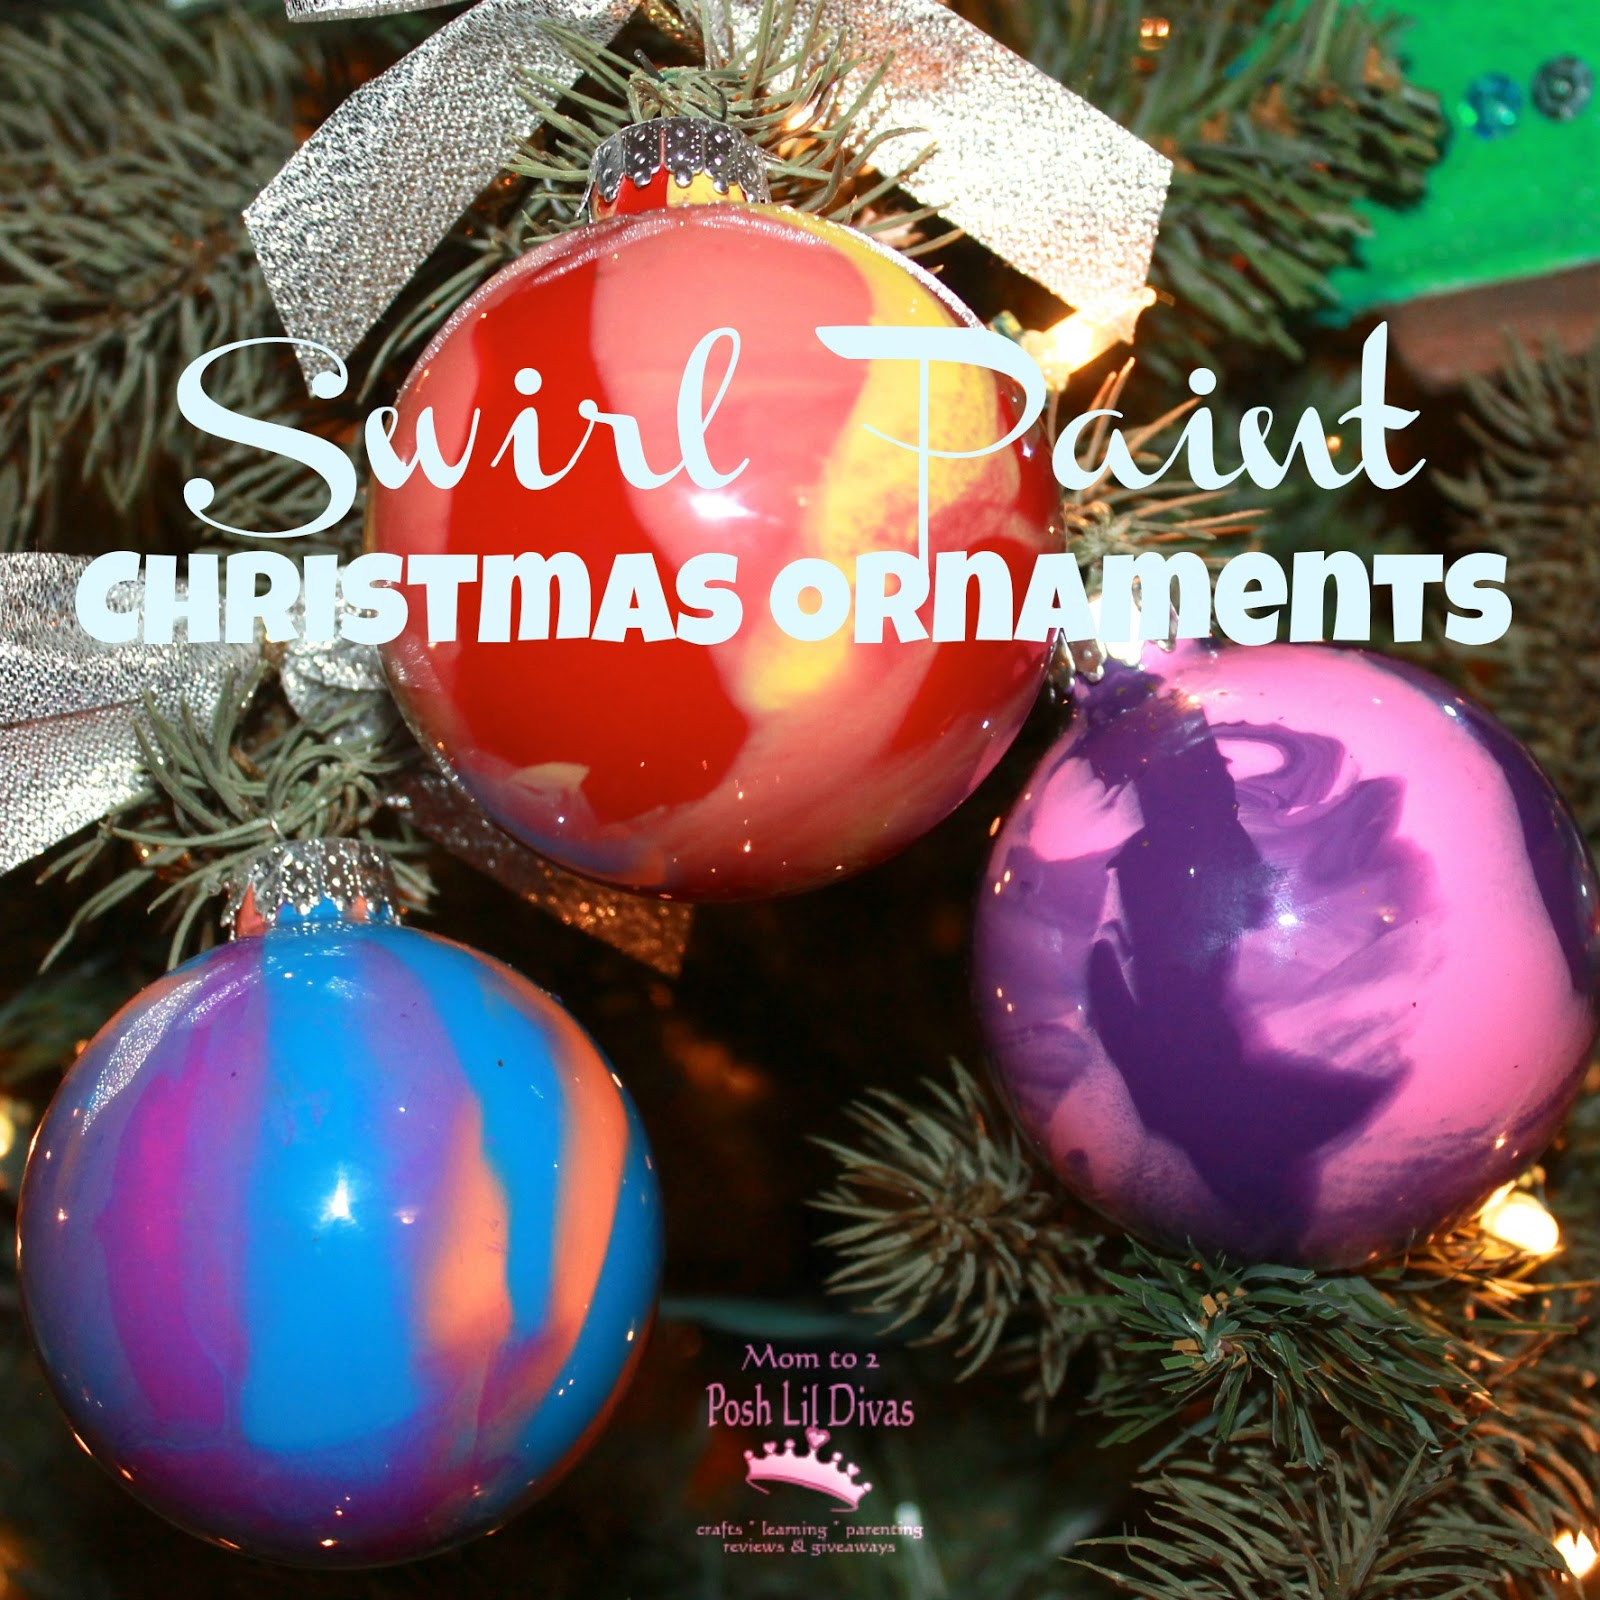 Clear christmas bulbs for crafting - Kid Made Swirl Paint Christmas Ornaments